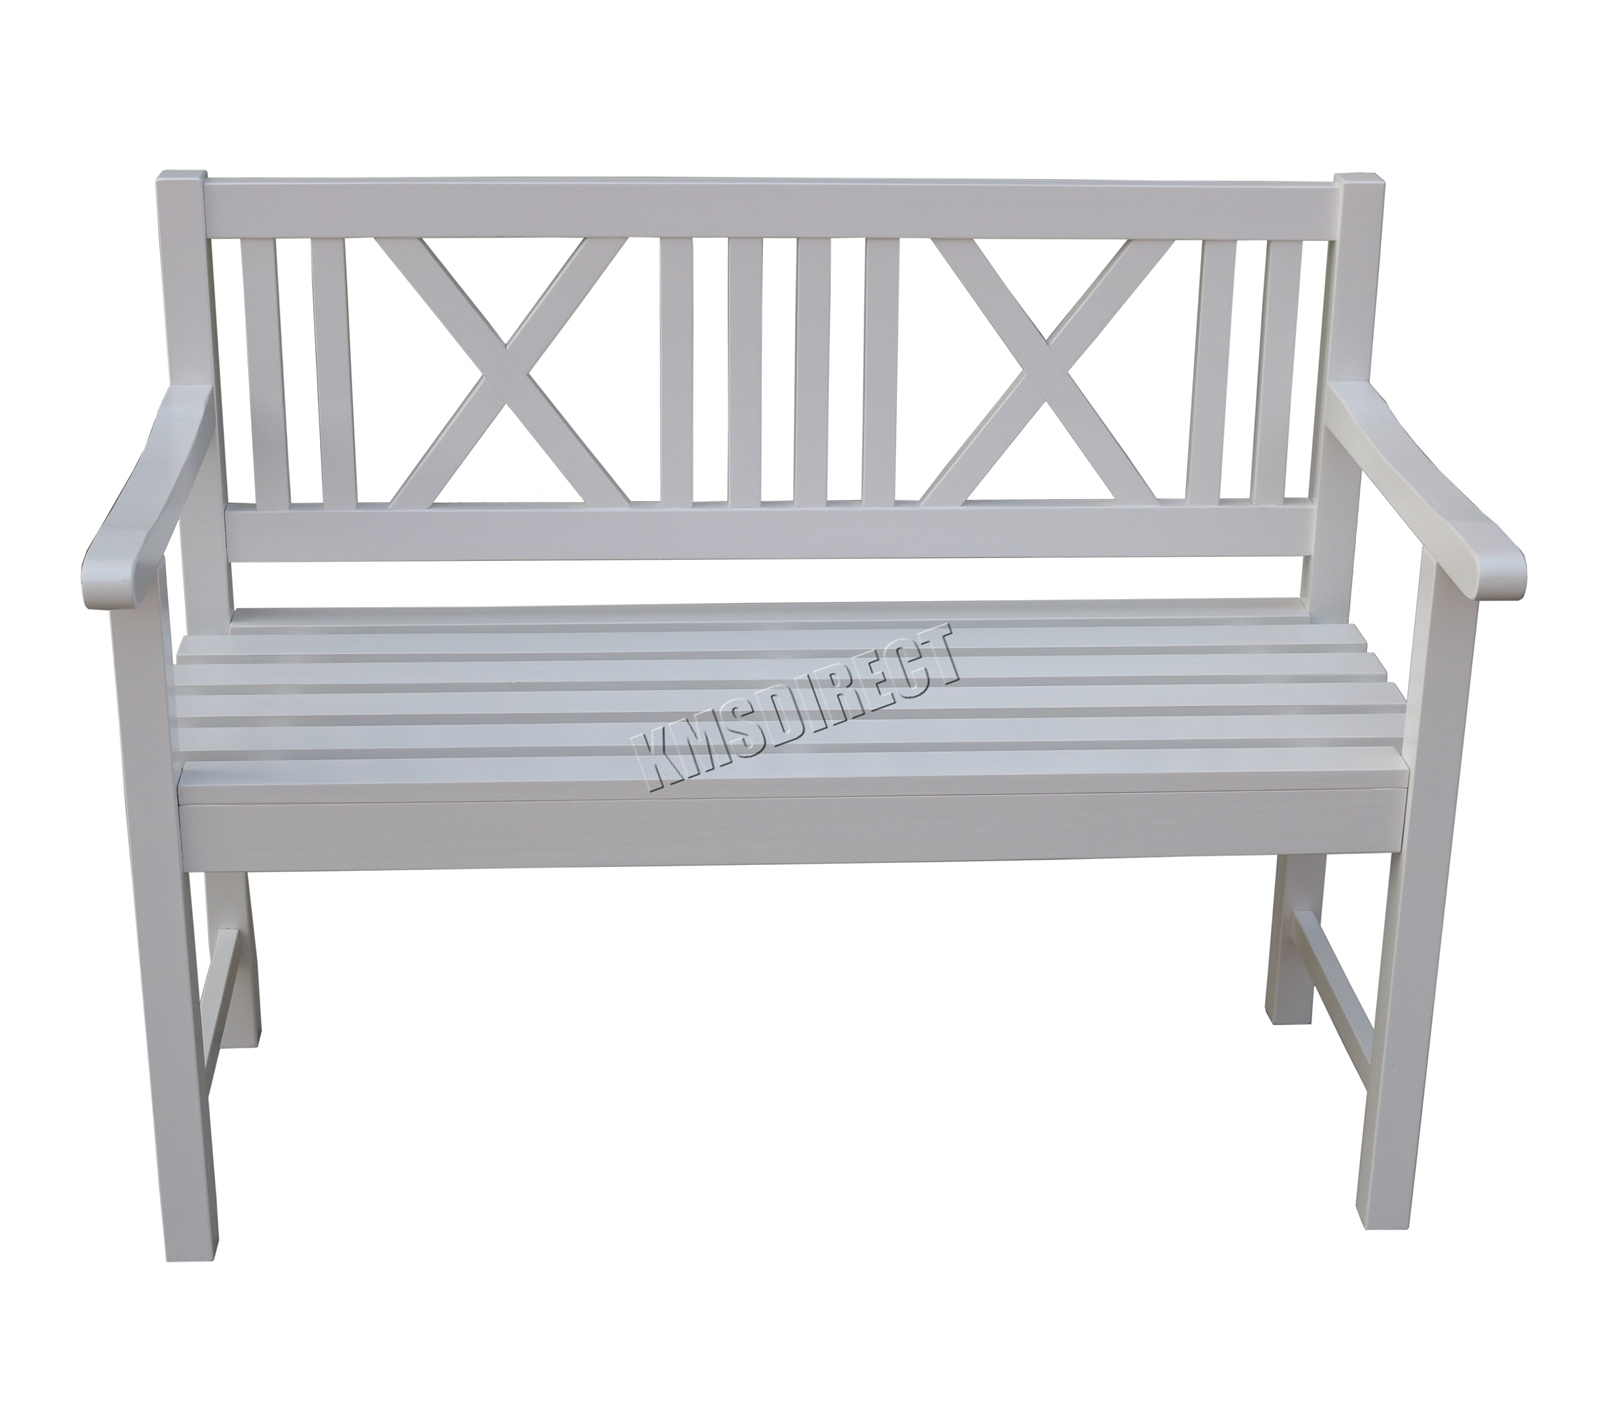 Swell Details About Westwood Outdoor Home 2 Seater Garden Bench Fir Wood Picnic Patio Ob01 White Ncnpc Chair Design For Home Ncnpcorg